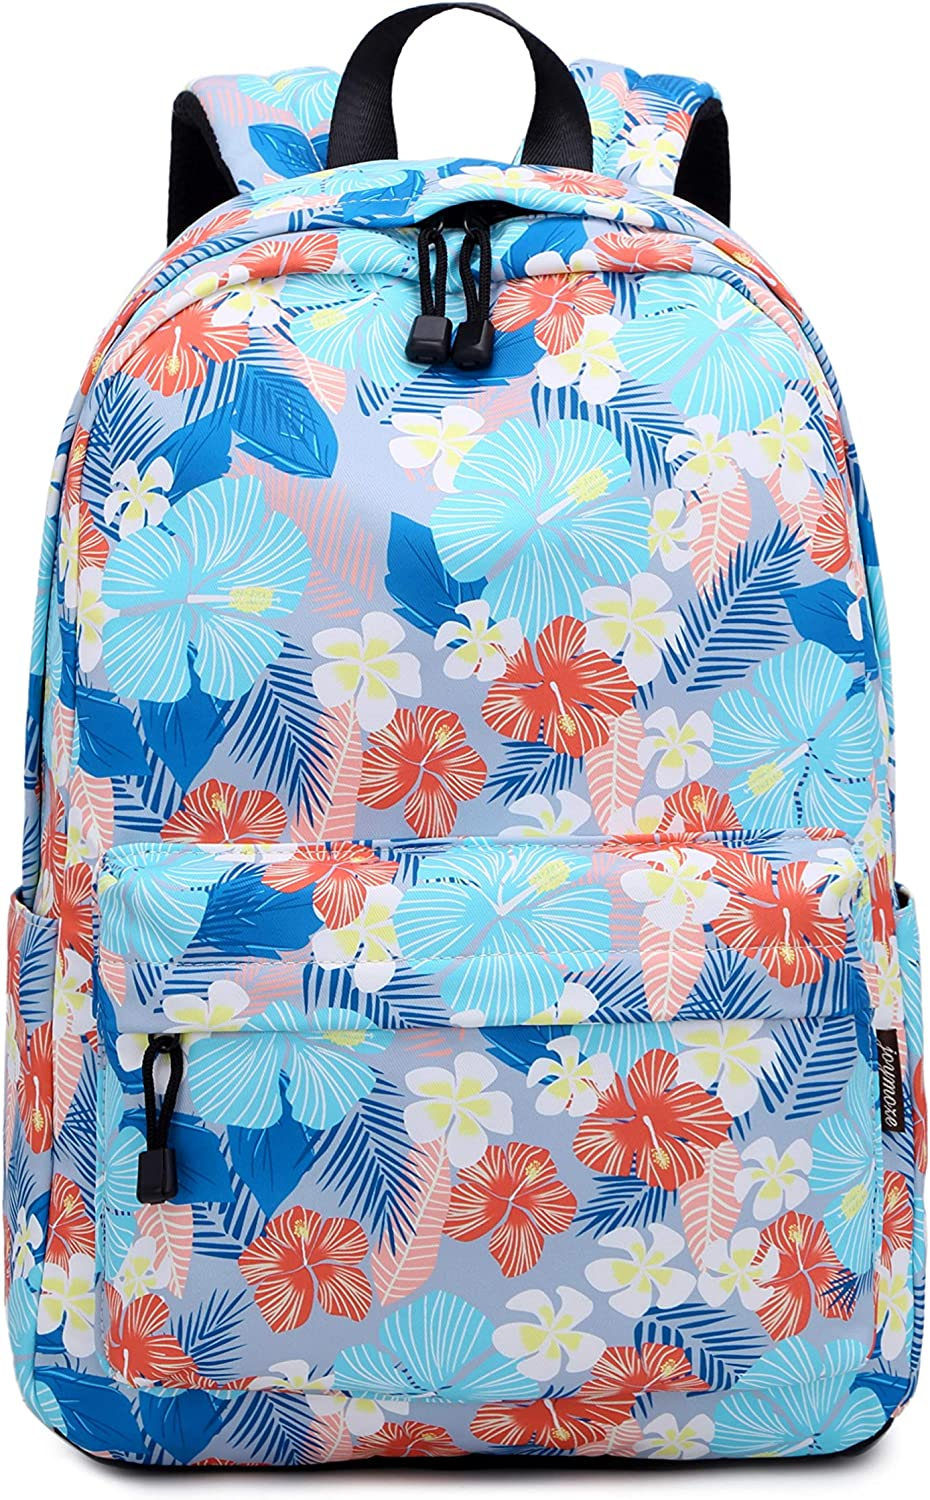 Acmebon Water Resistant Fashion College Backpack with 15.6